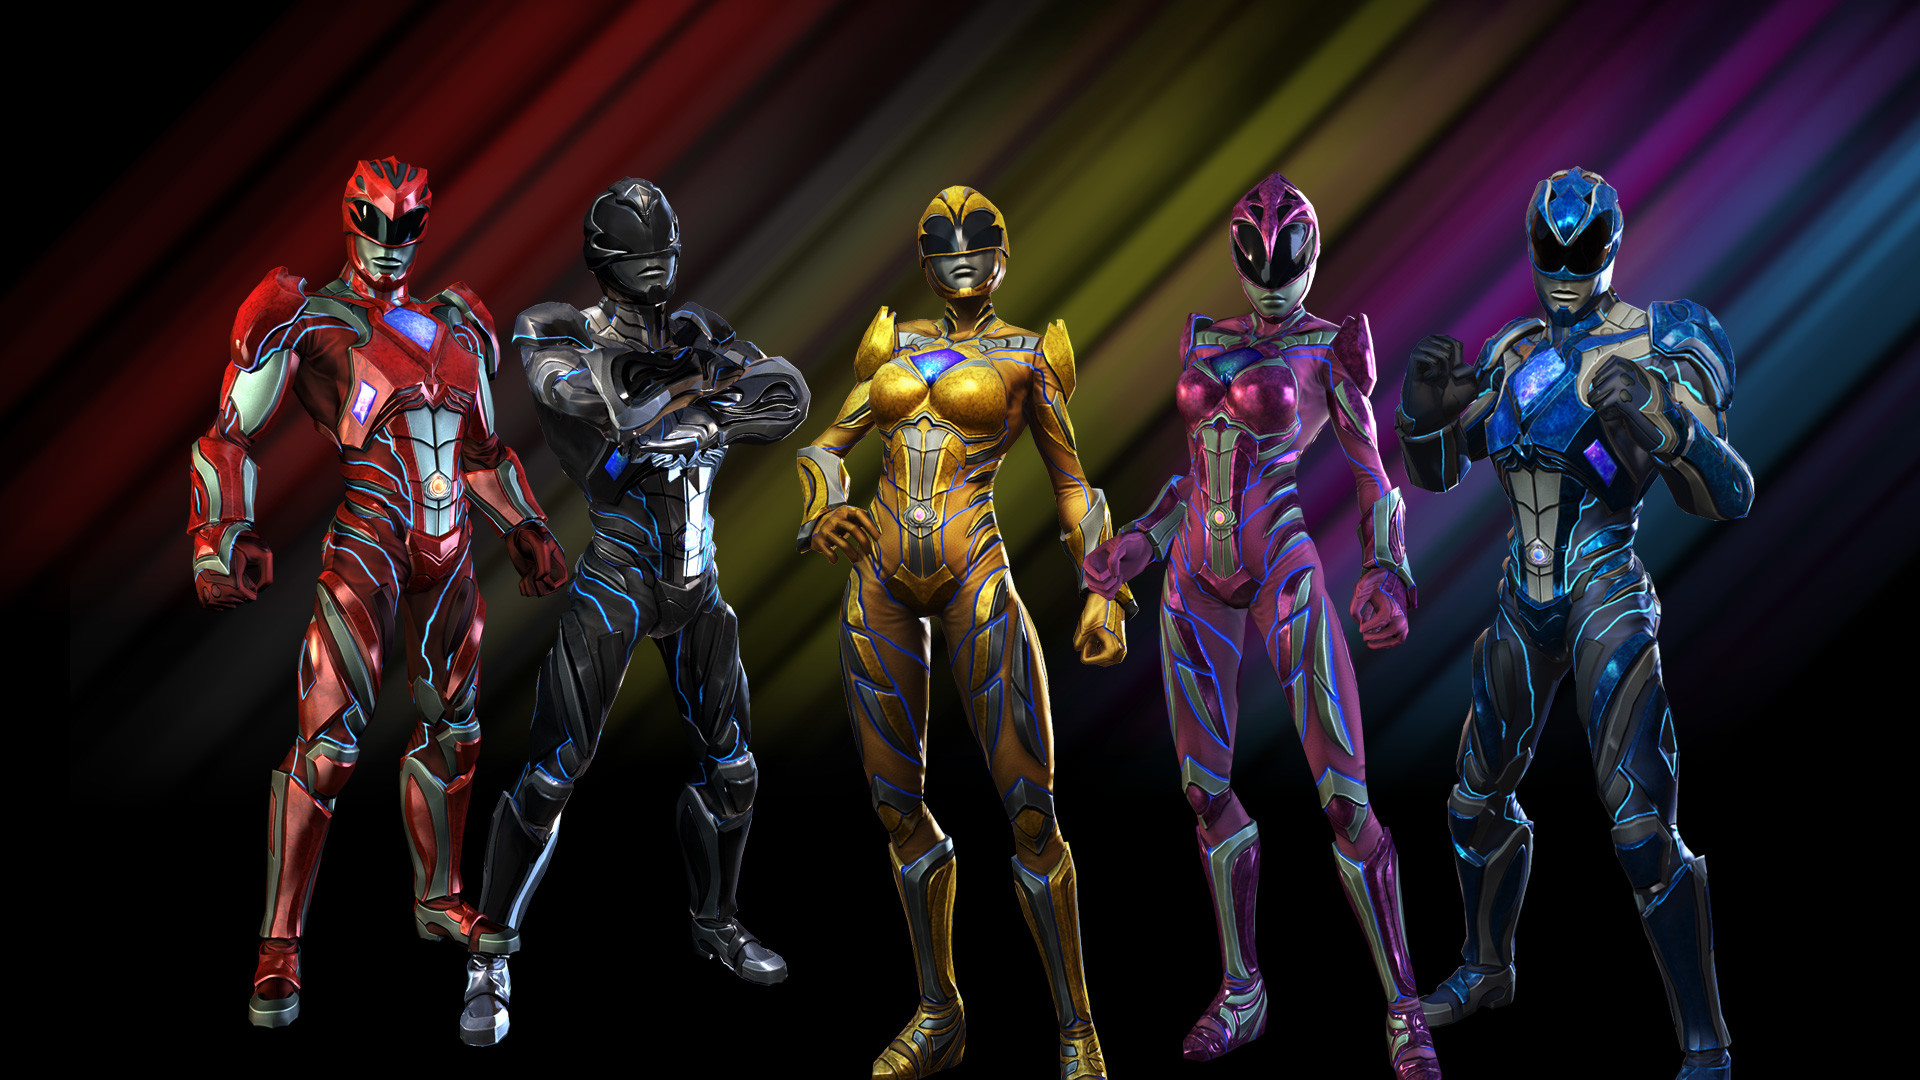 Res: 1920x1080, Power Rangers (2017) Wallpapers 6 - 1920 X 1080